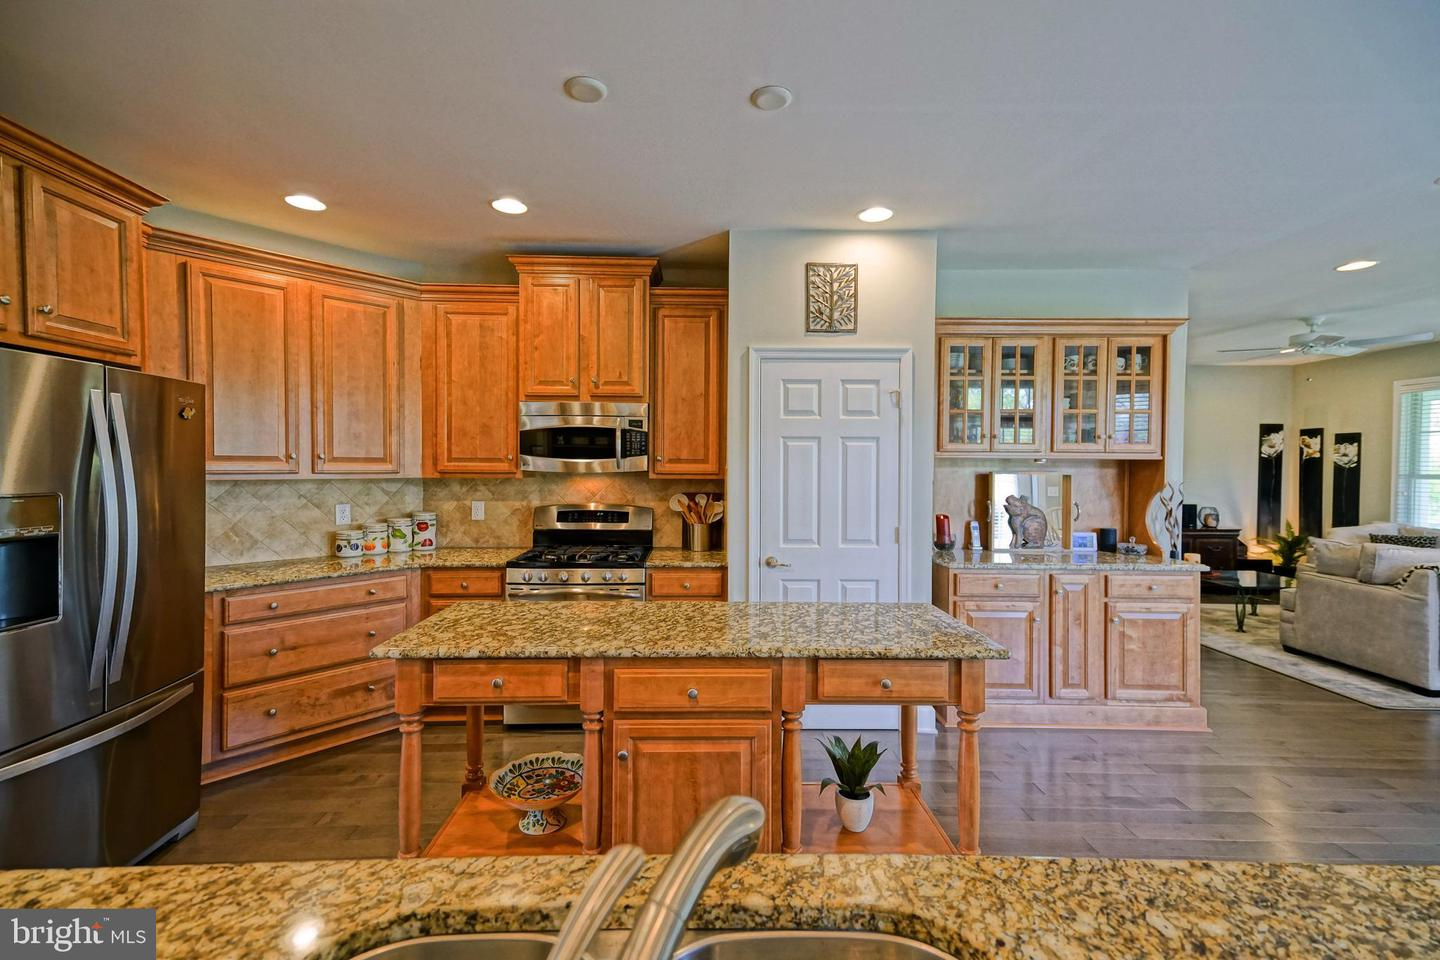 DESU139128-301667379325-2019-08-05-10-43-56 35222 Overfalls Dr N | Lewes, DE Real Estate For Sale | MLS# Desu139128  - Lee Ann Group